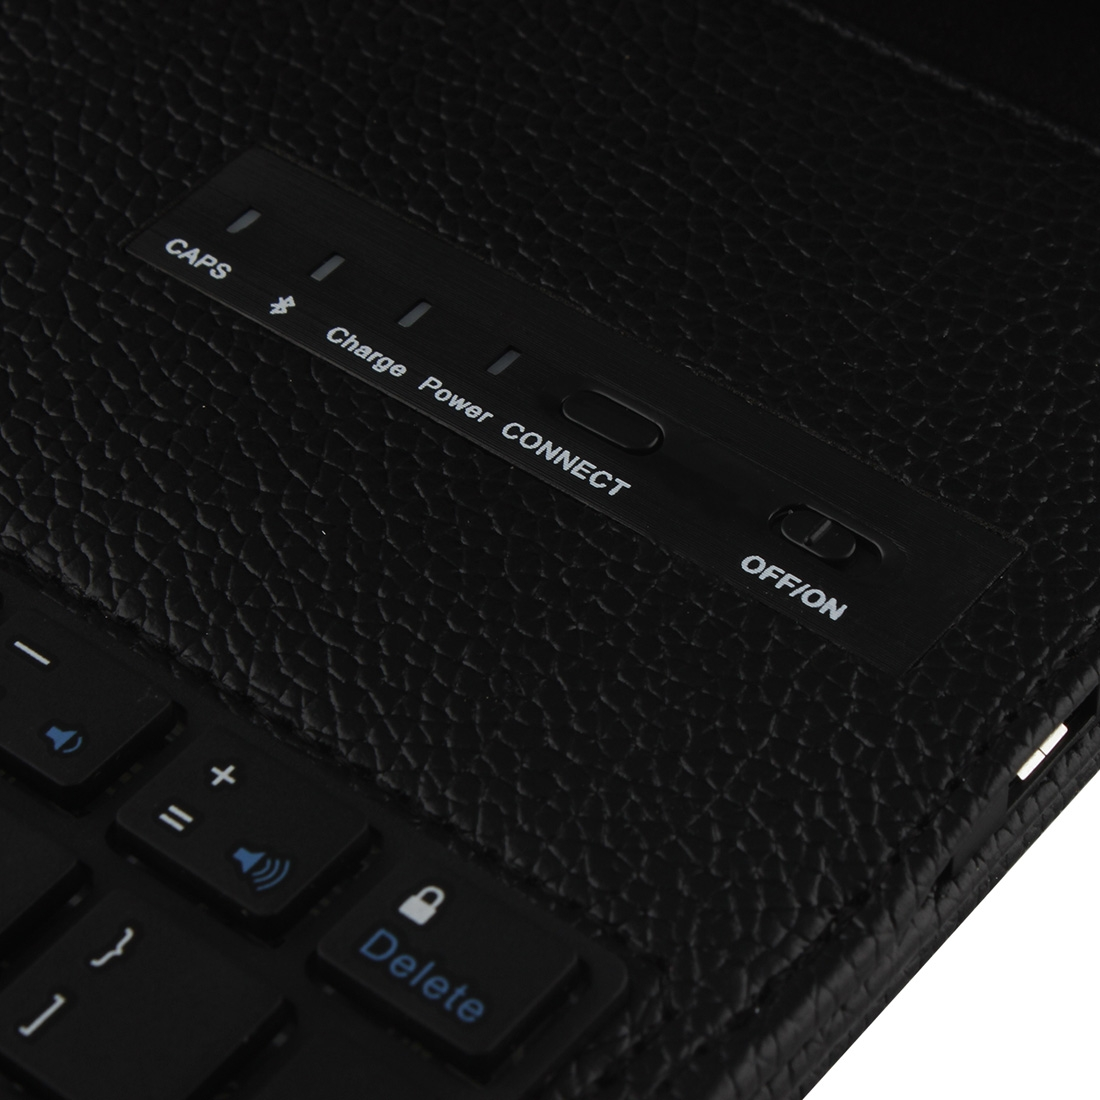 iPad Air 2 Case With Keyboard For iPad Air 2, iPad 6th Gen., Leather Case & Bluetooth (Black)